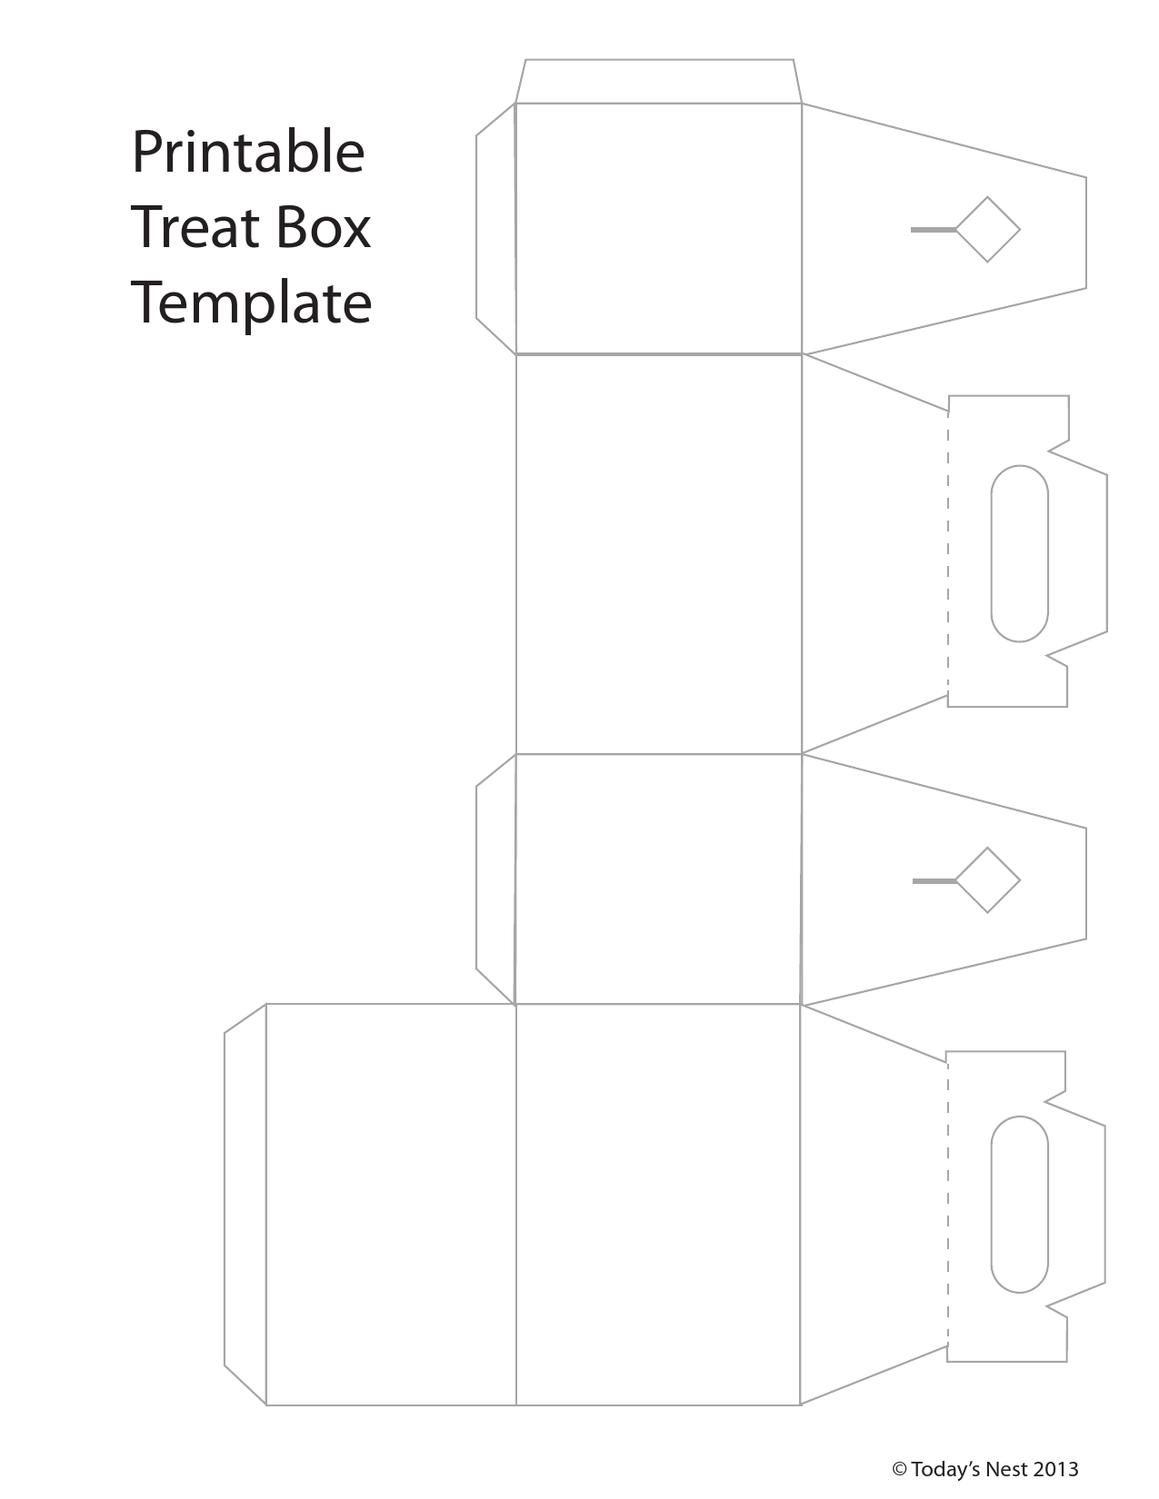 Printable Template For A Little Box Perfect Cans Or Small Gifts Print On Cardstock Cut And Glue